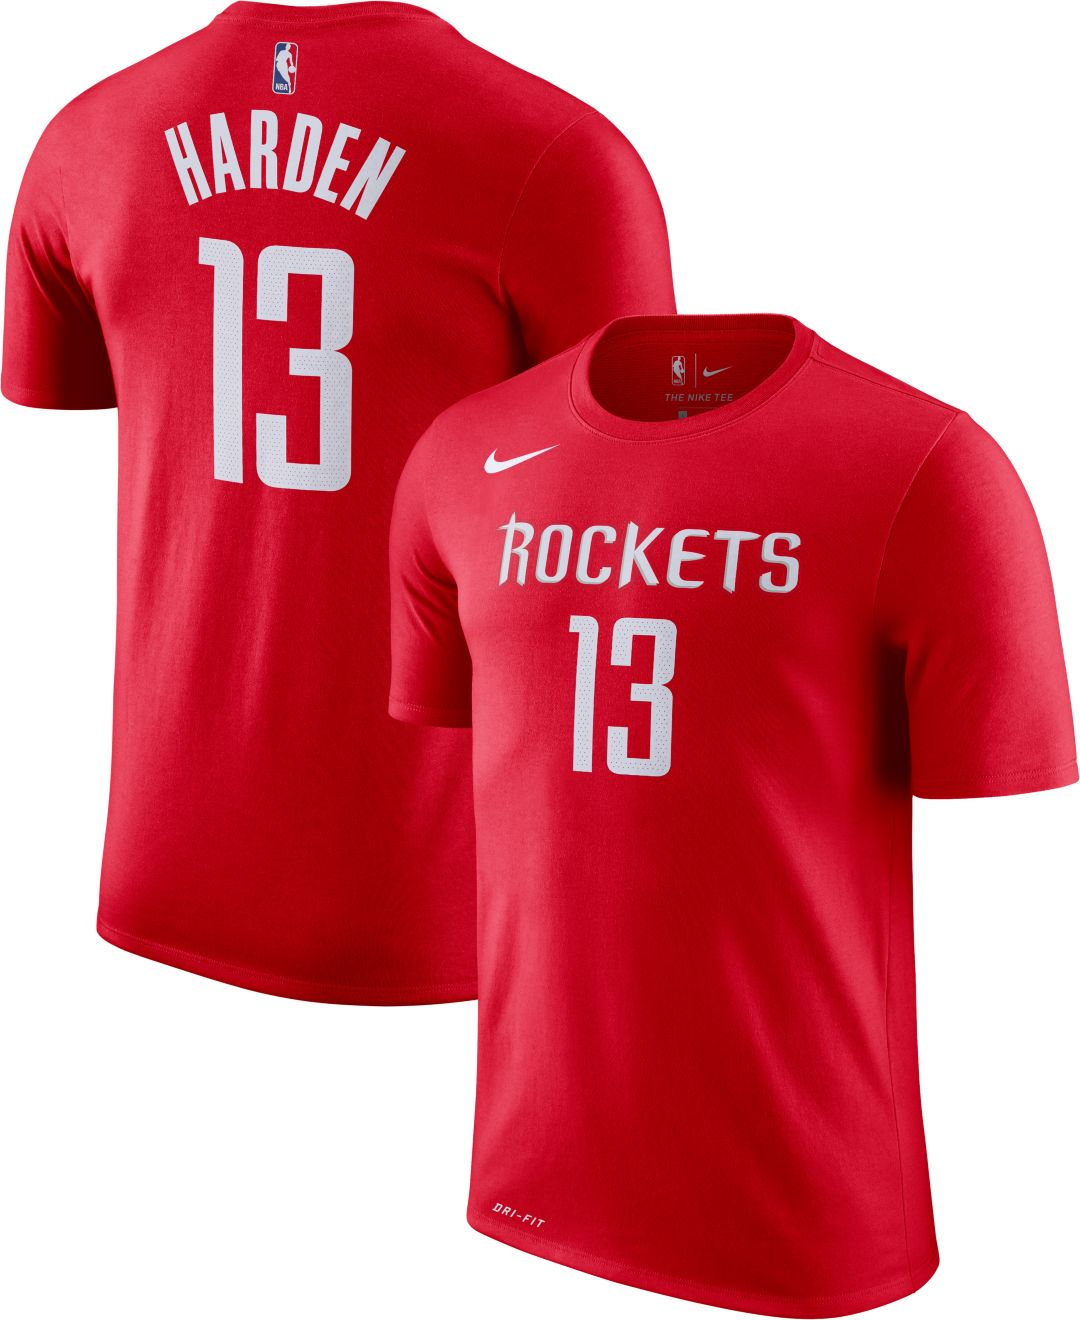 new styles 5fa5f 0836e Nike Men's Houston Rockets James Harden #13 Dri-FIT Red T-Shirt